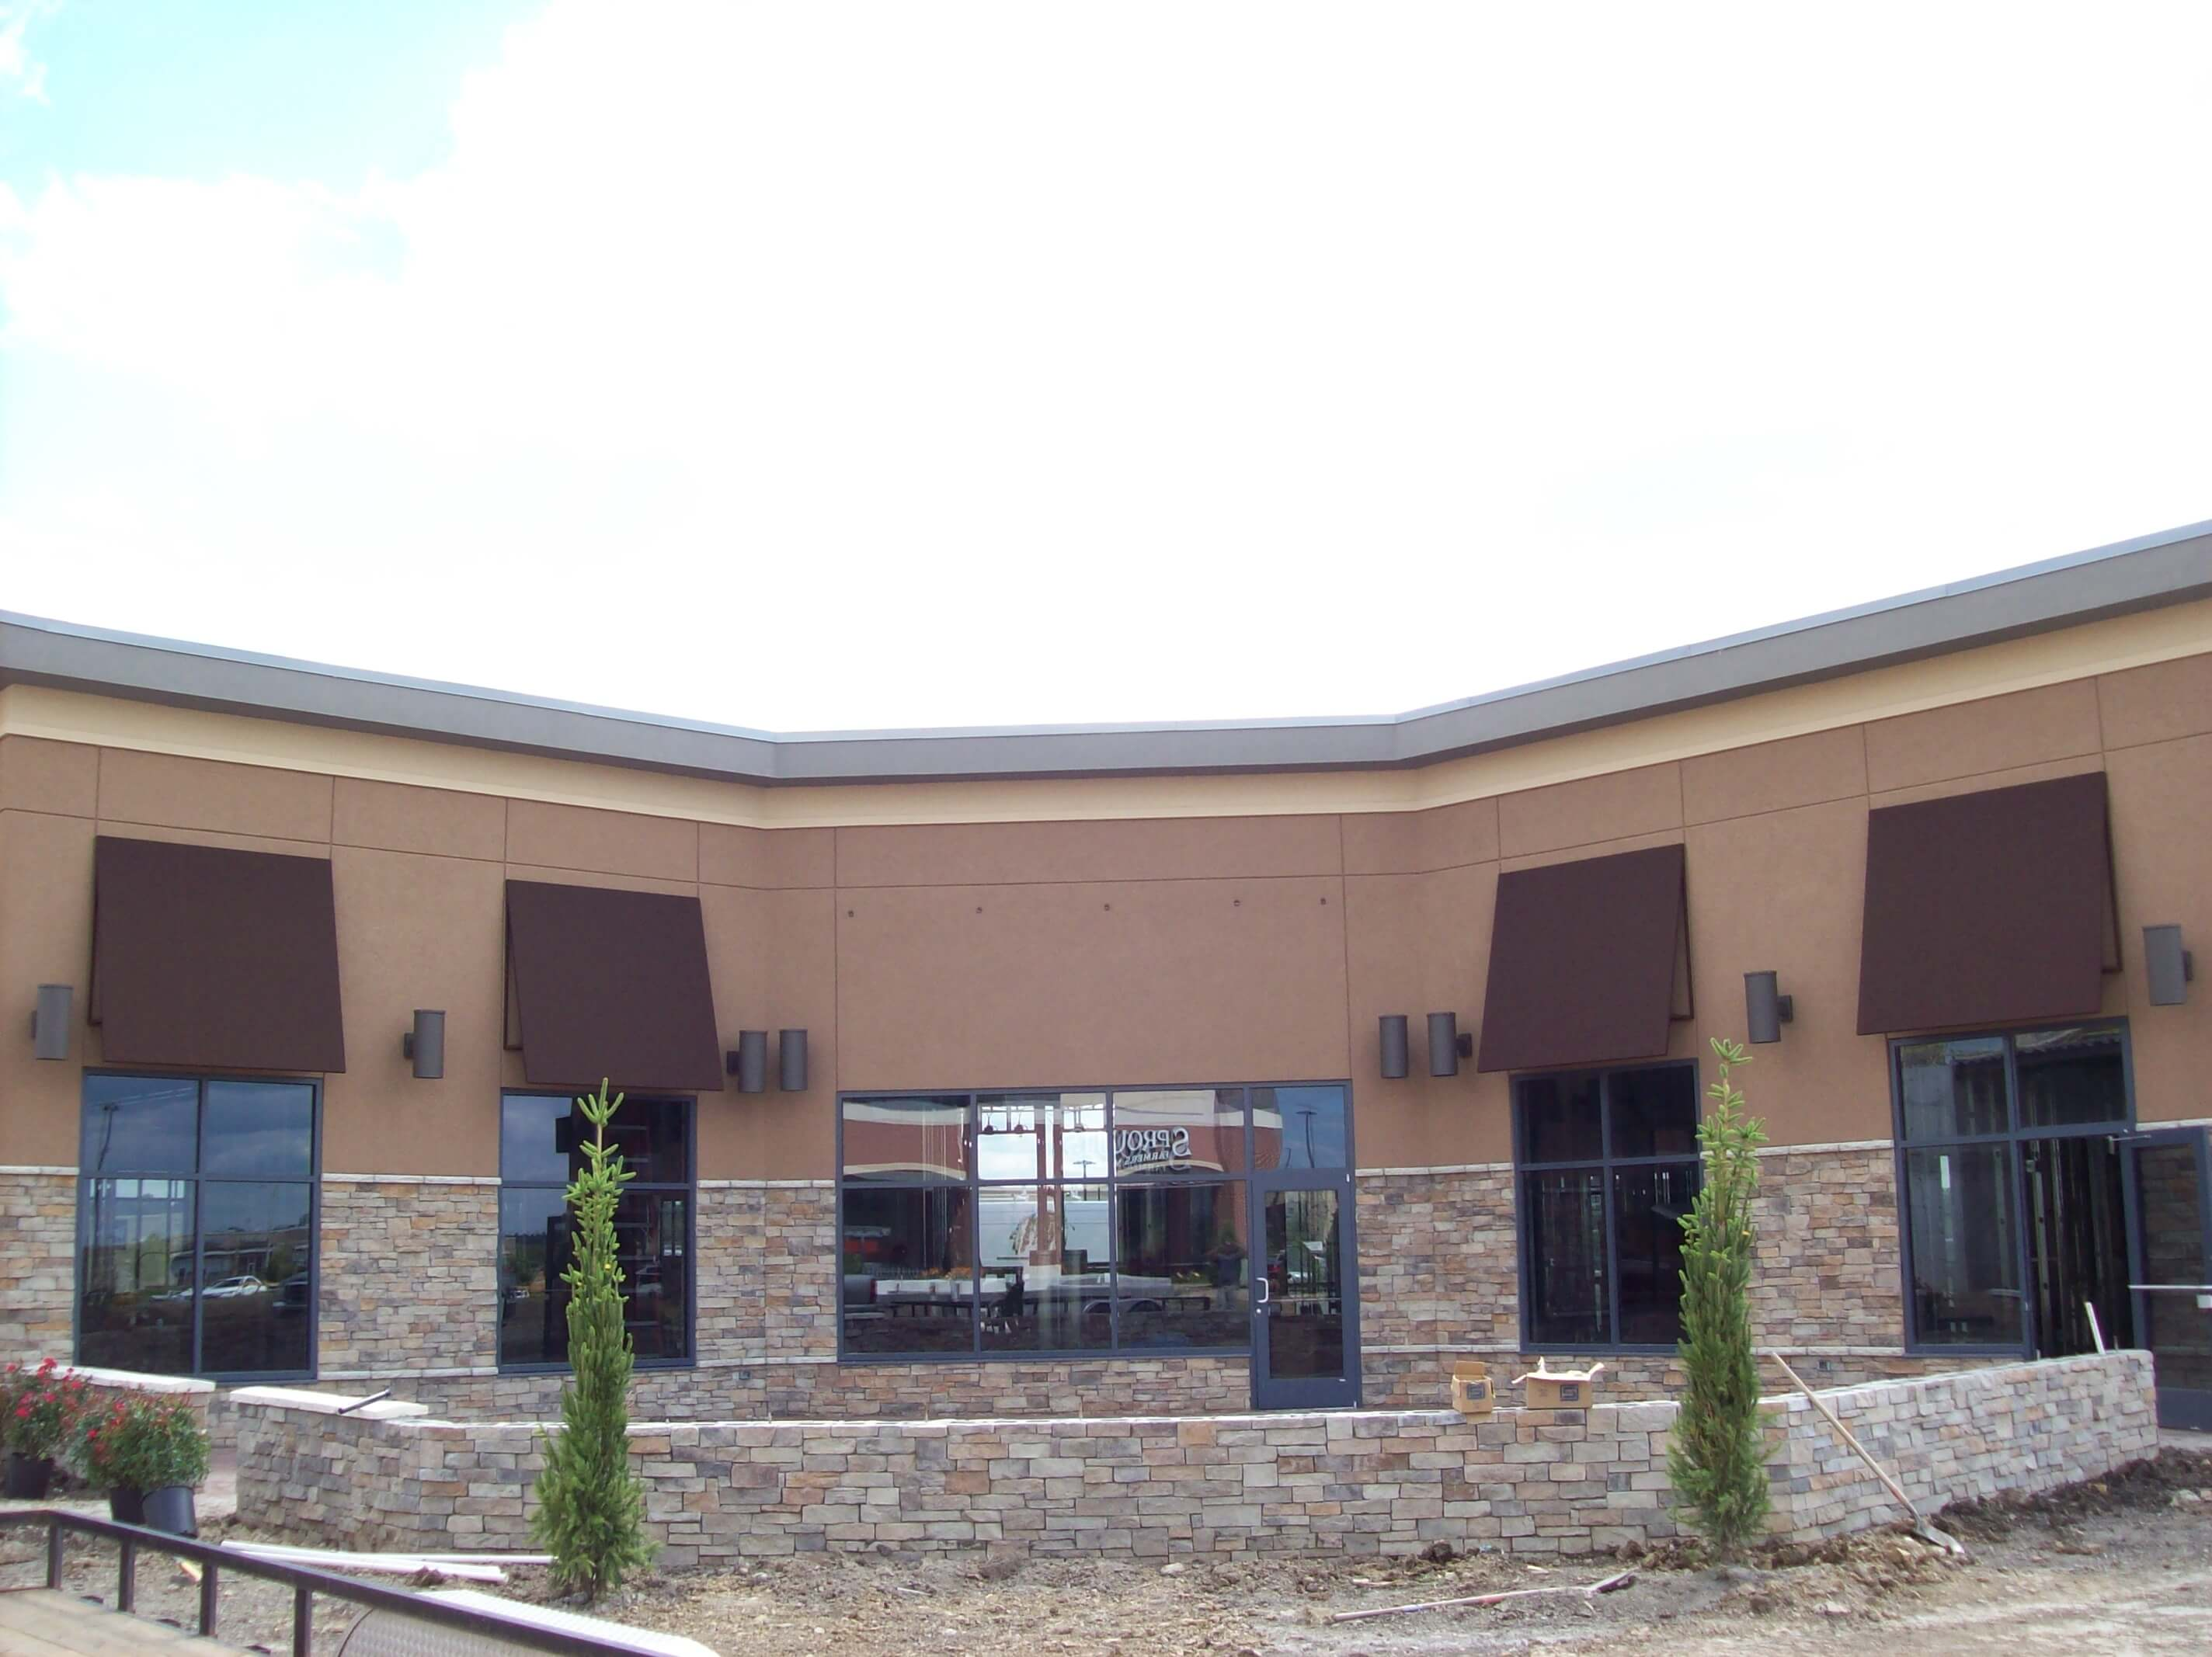 Commercial Building Awnings and Canopies - Western Awning